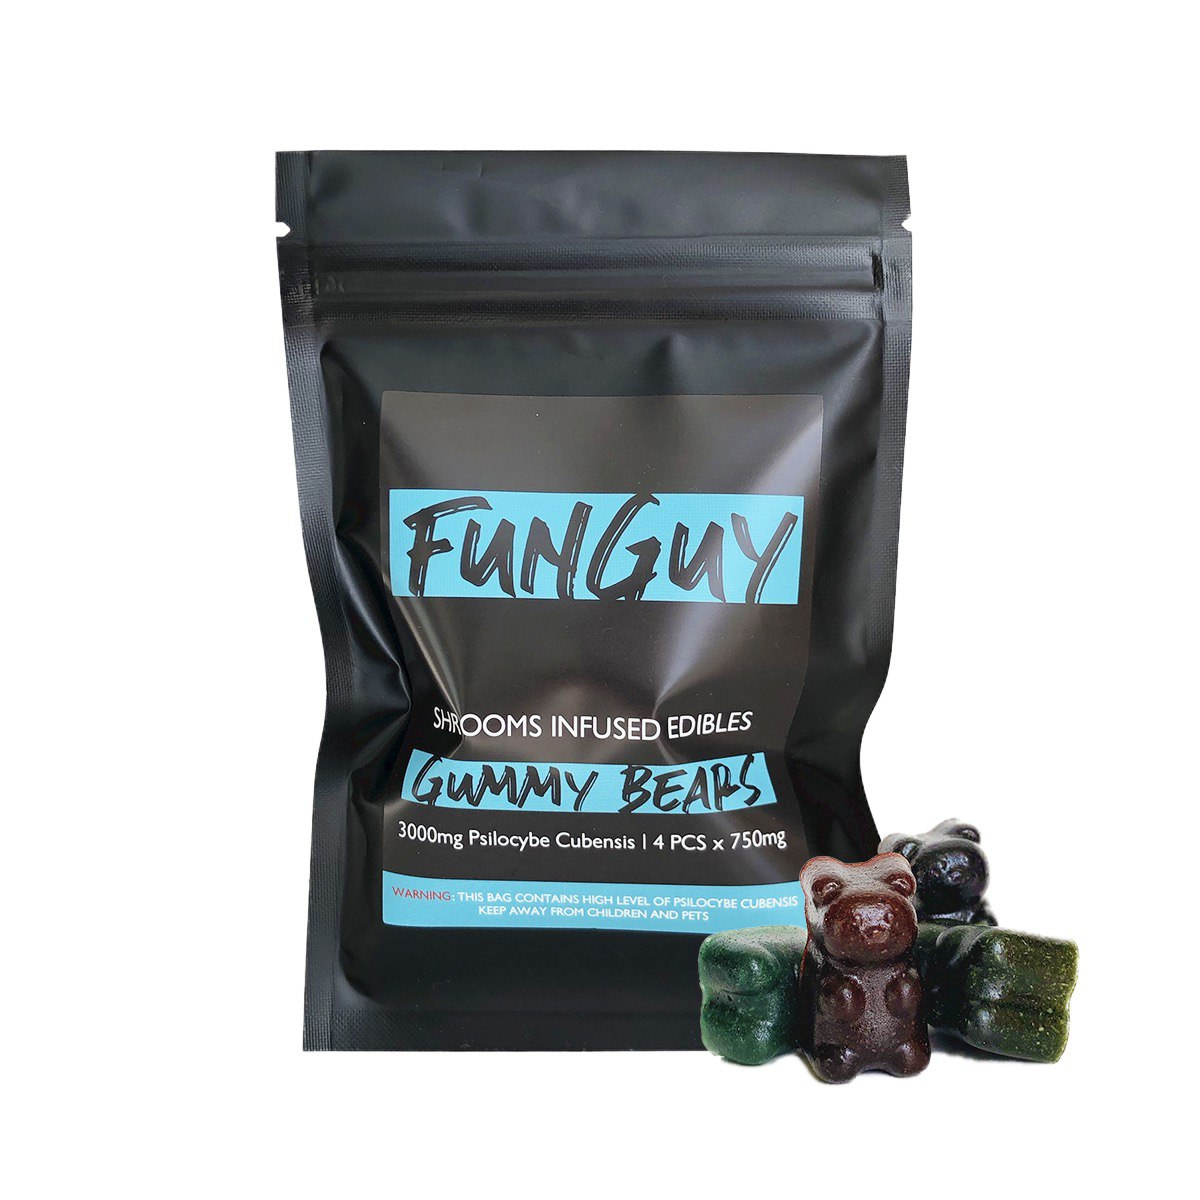 FunGuy – Assorted Gummy Bears